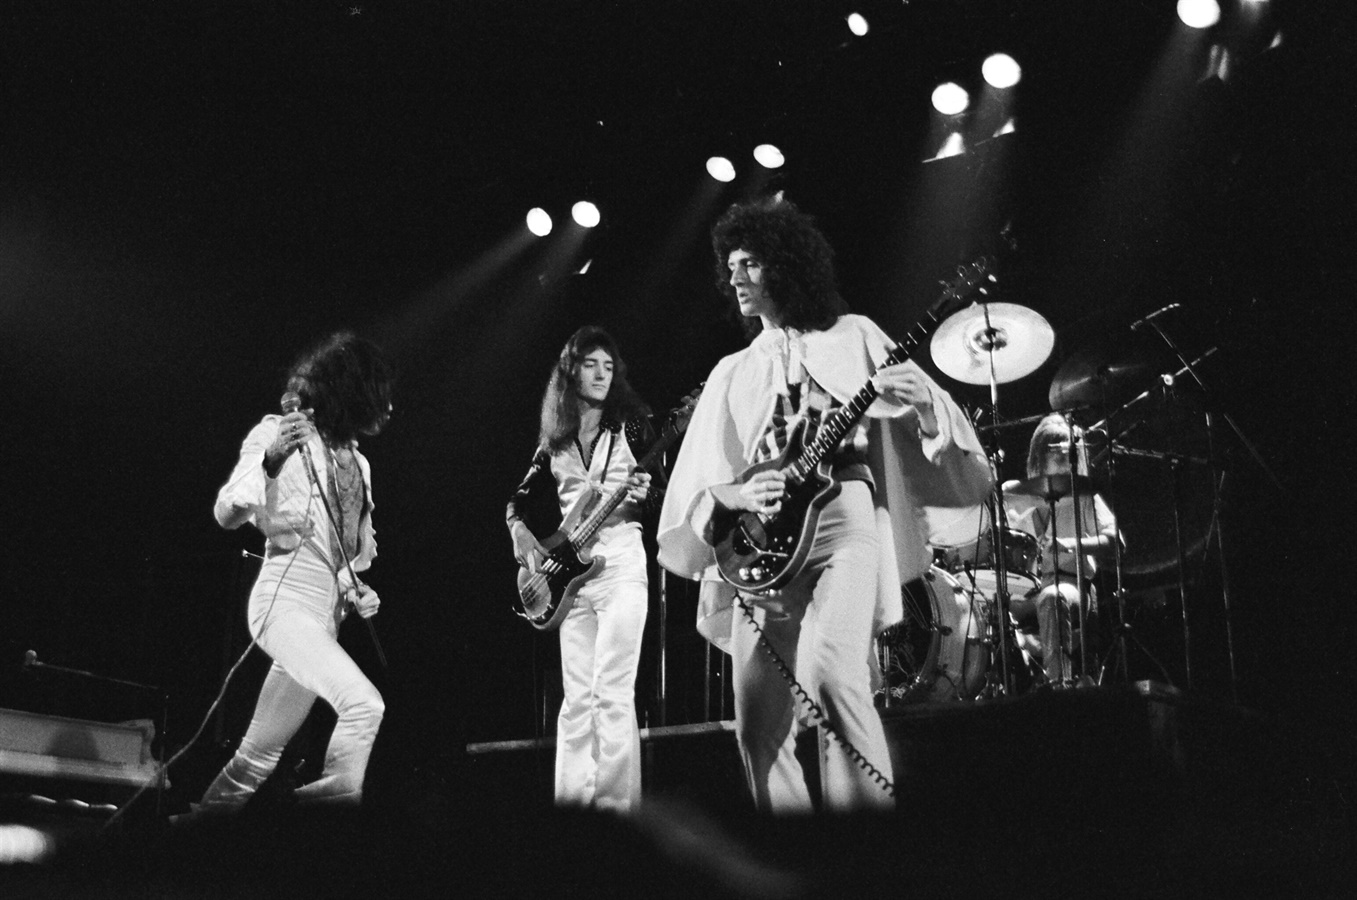 Queen: A Night in Bohemia, un'immagine del concerto del 1975